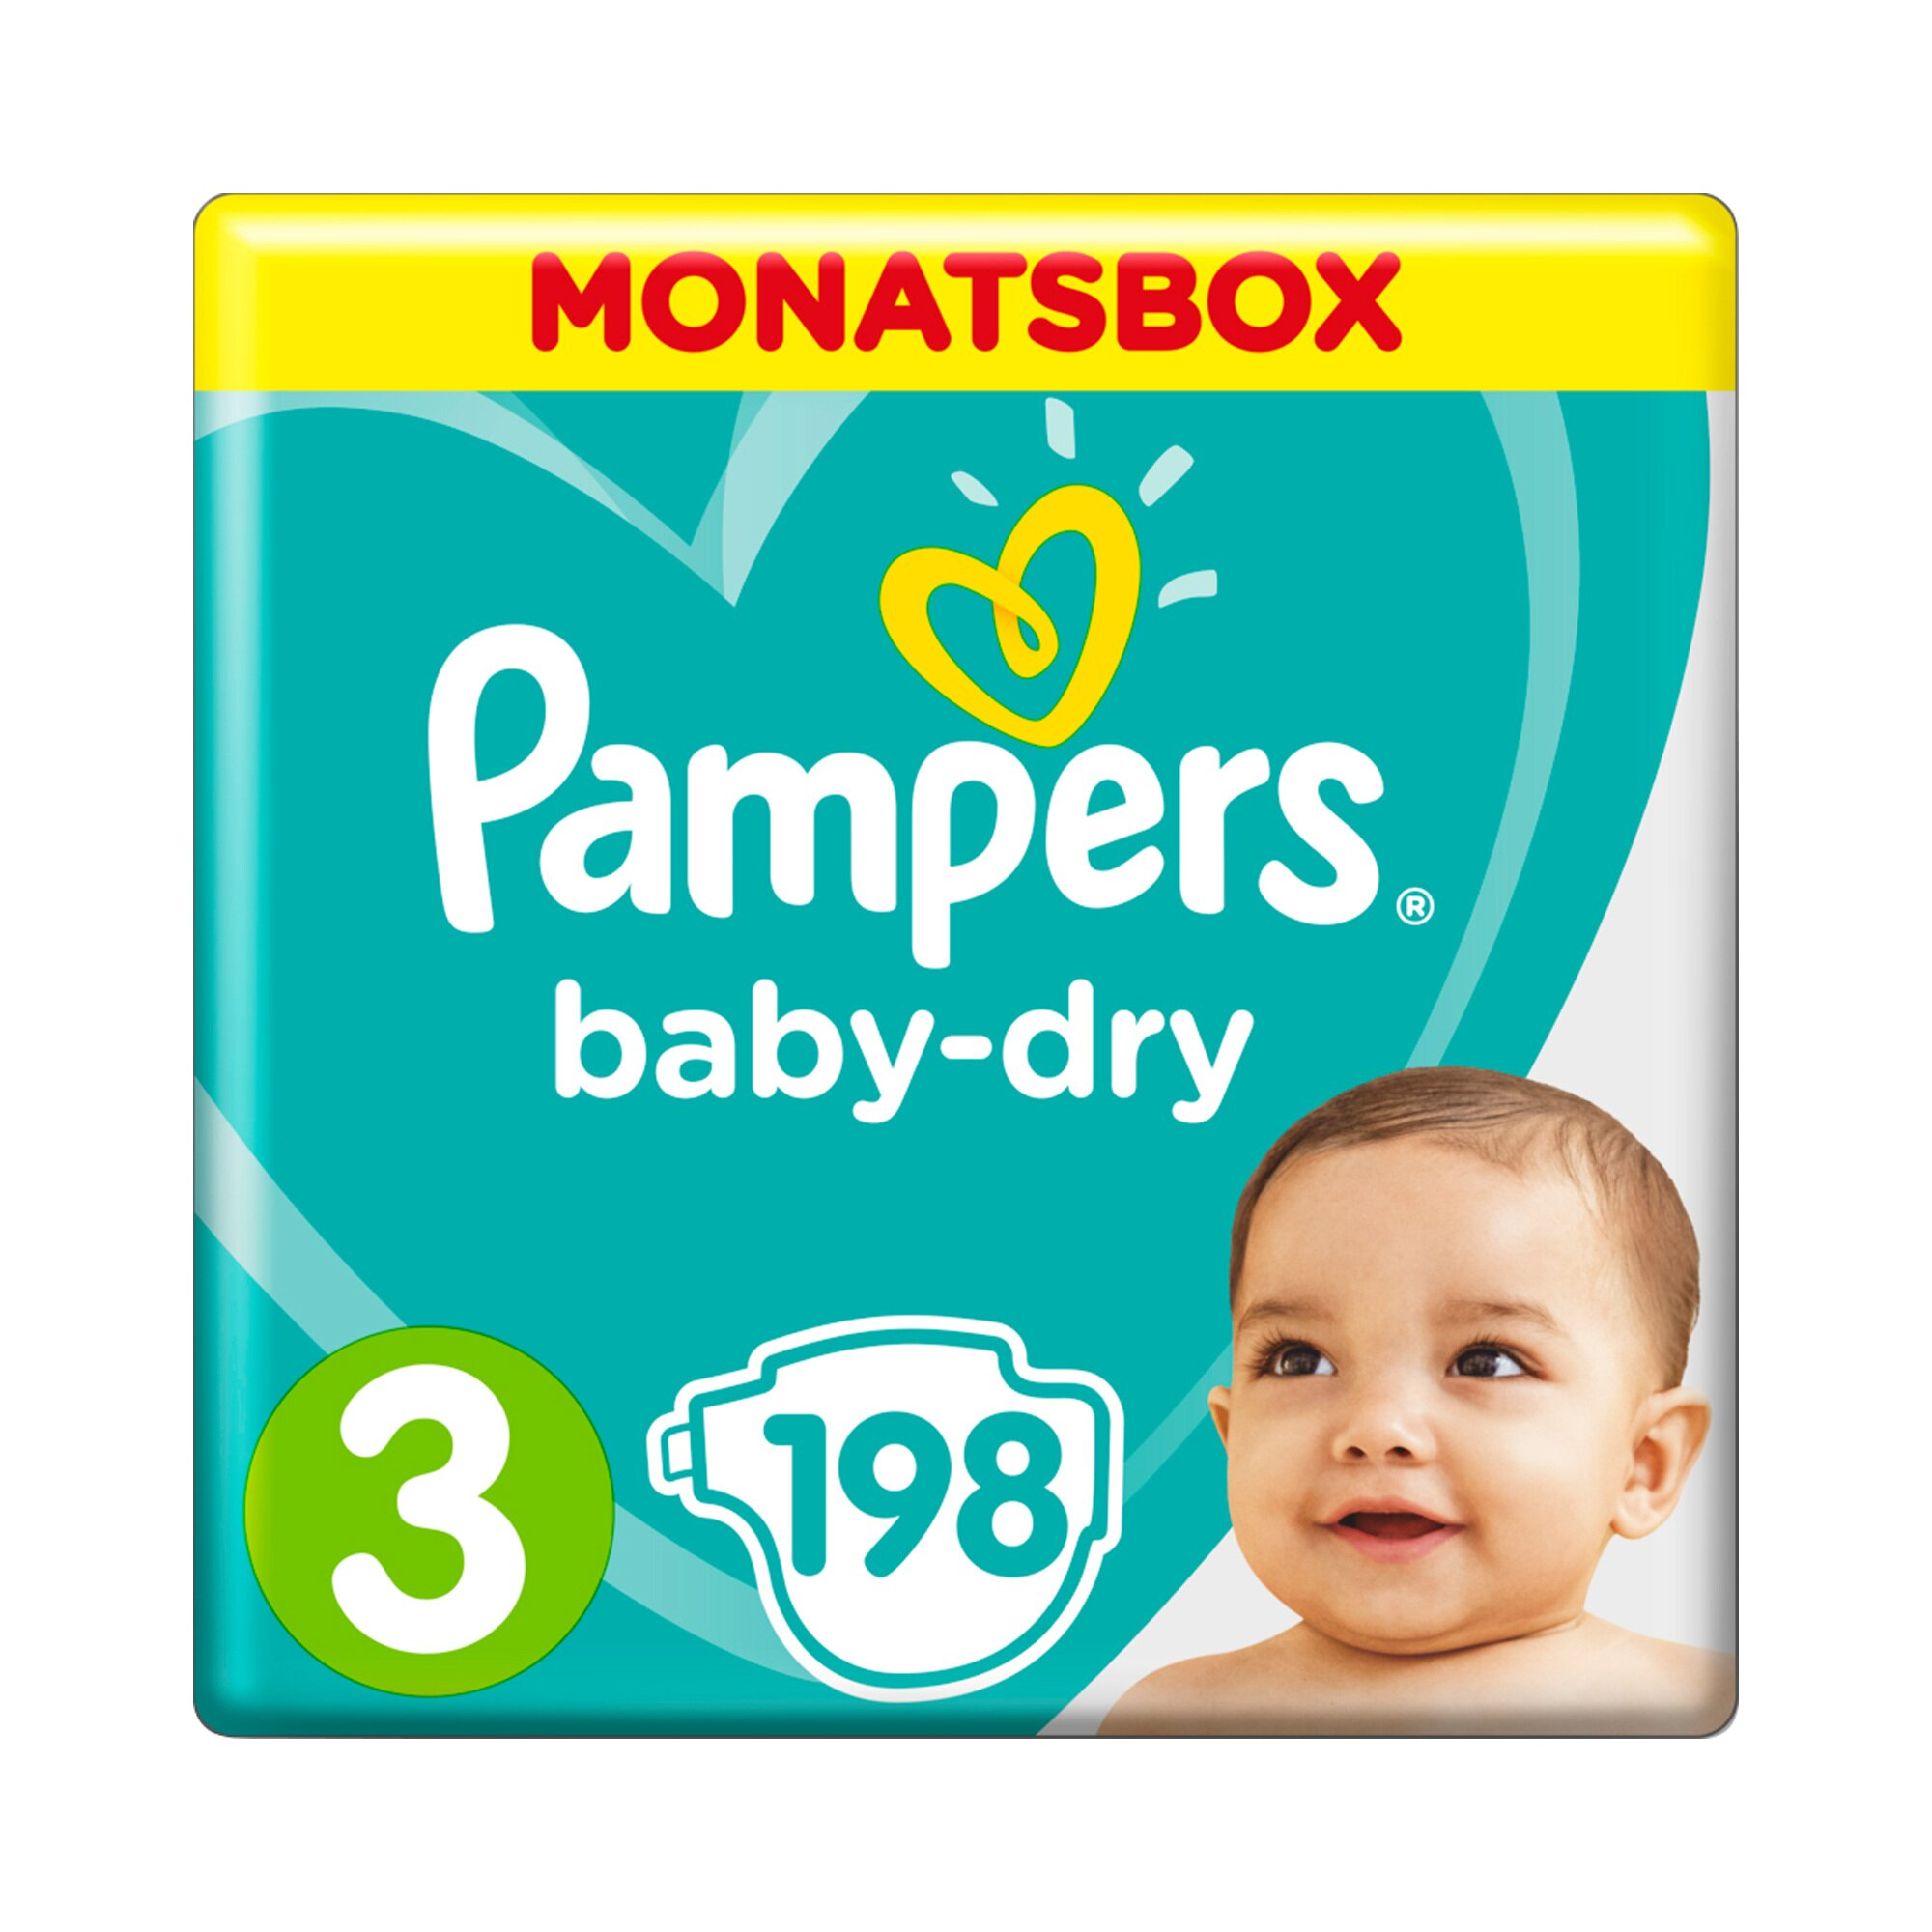 Pampers Baby Dry Windeln Gr. 3 6-10 kg Monatsbox 198 St.